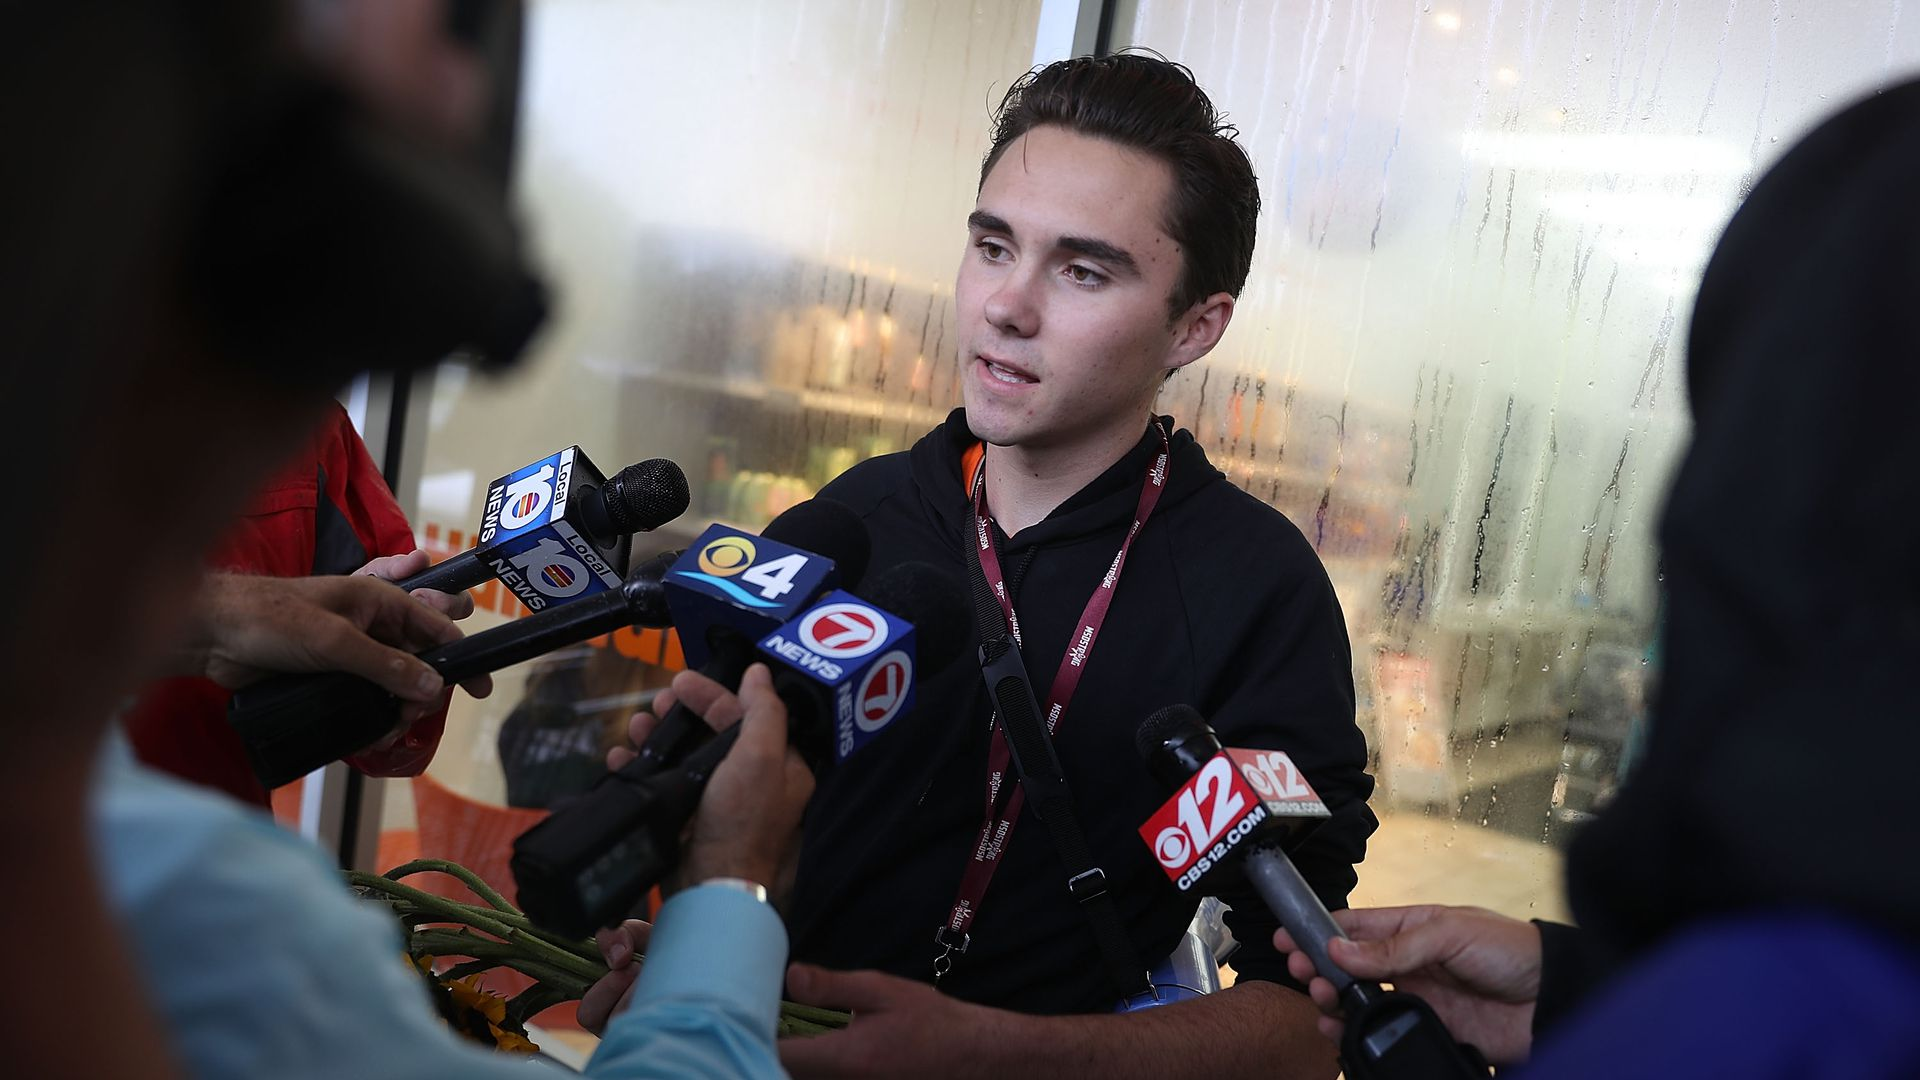 avid Hogg, a survivor of the Marjory Stoneman Douglas High School mass shooting, speaks to the media